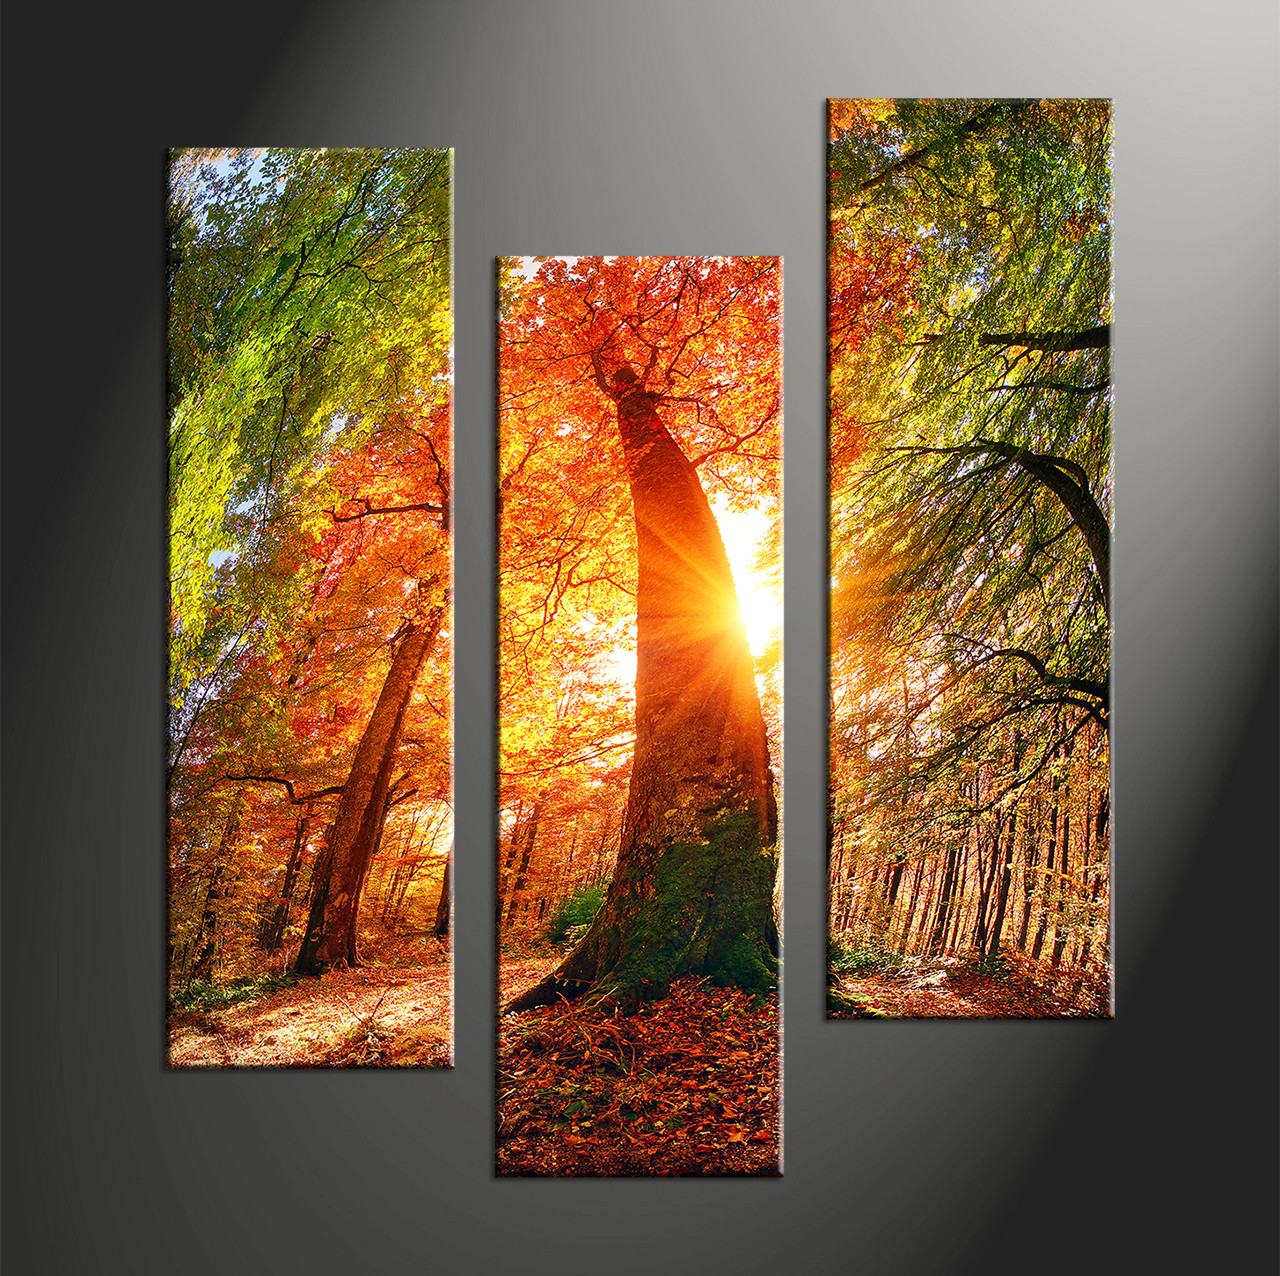 Home Decor 3 Piece Canvas Art Prints Nature Artwork Scenery Large